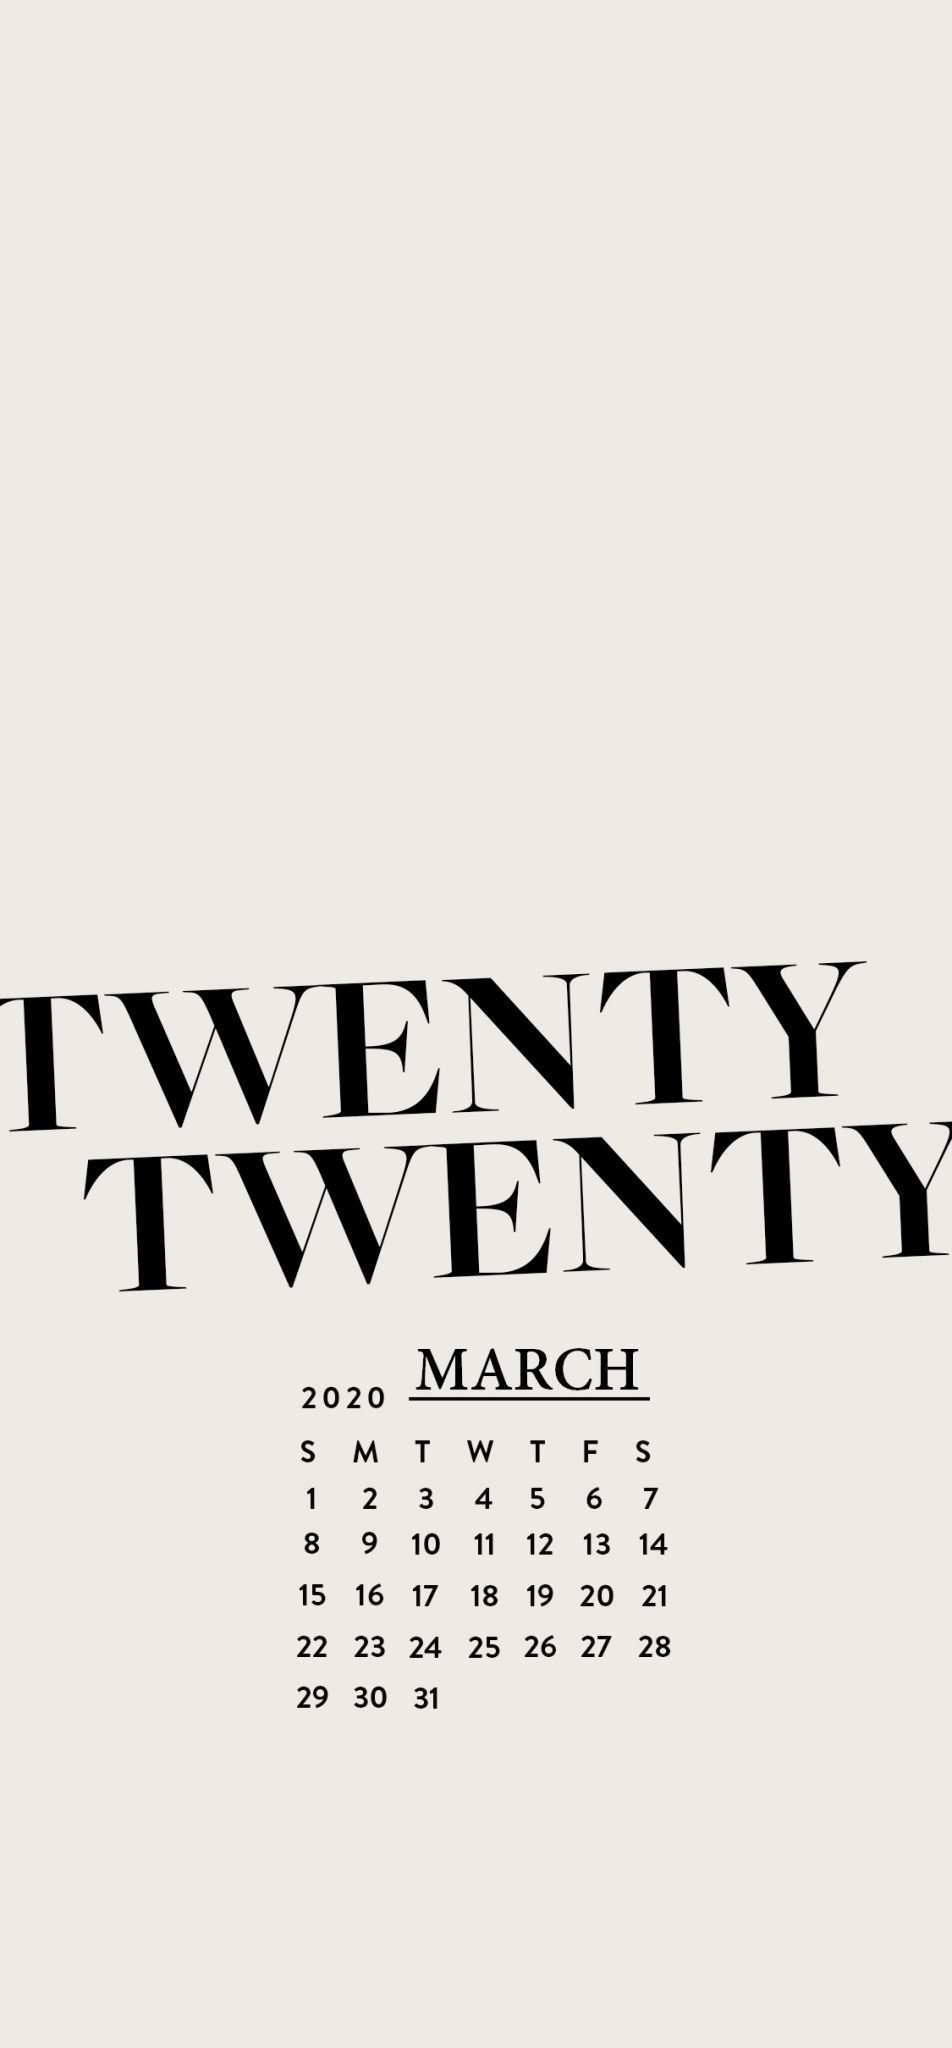 March 2020 iPhone Background